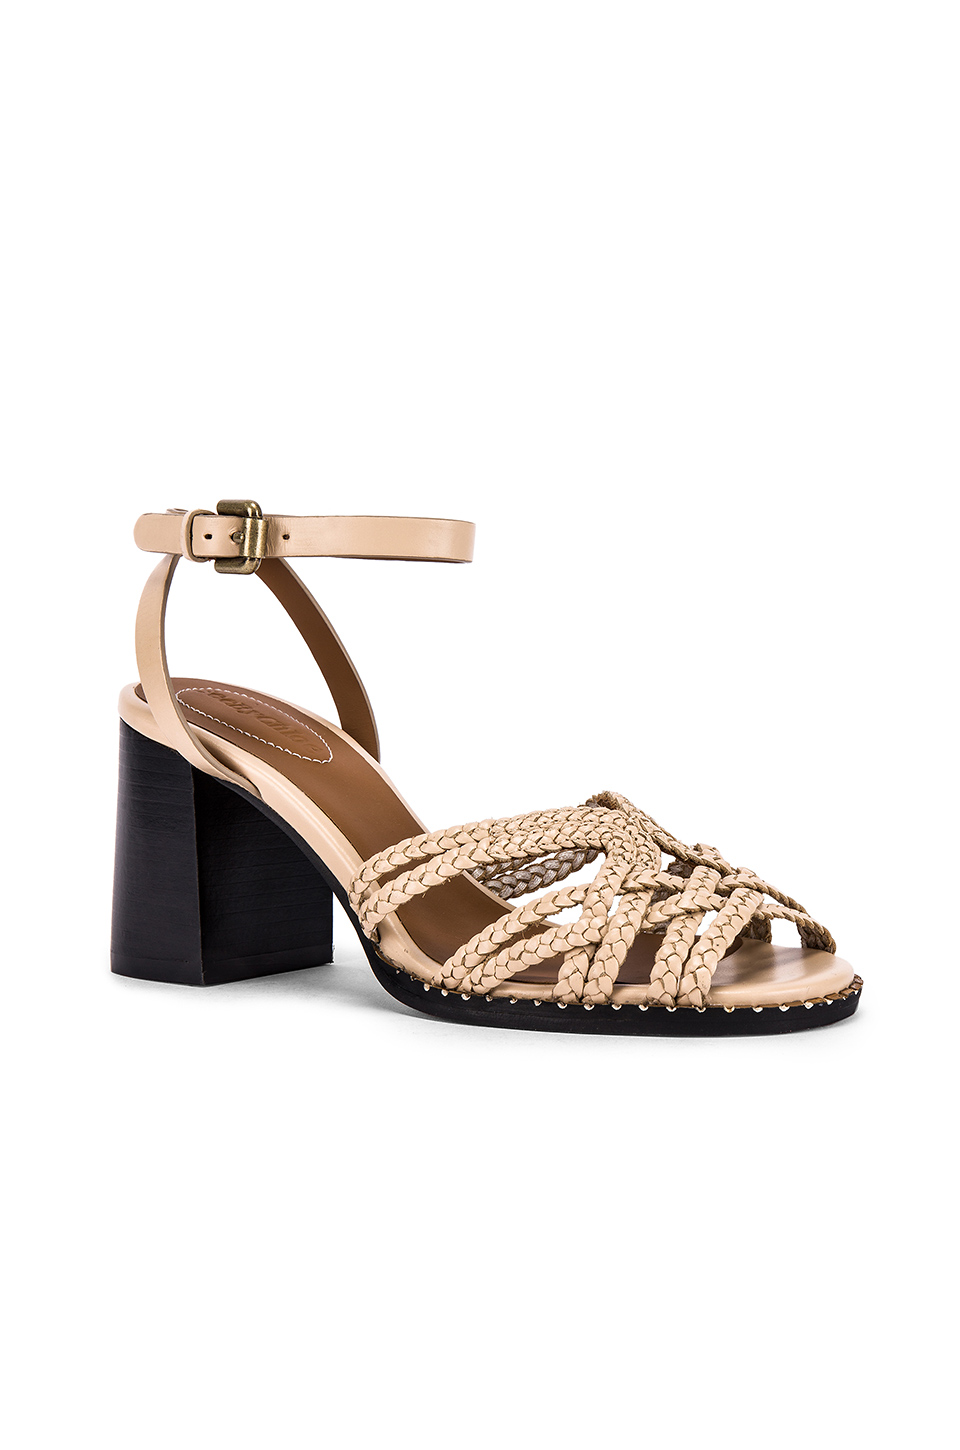 049a298ac73 Buy Original See By Chloe Braided Sandal at Indonesia